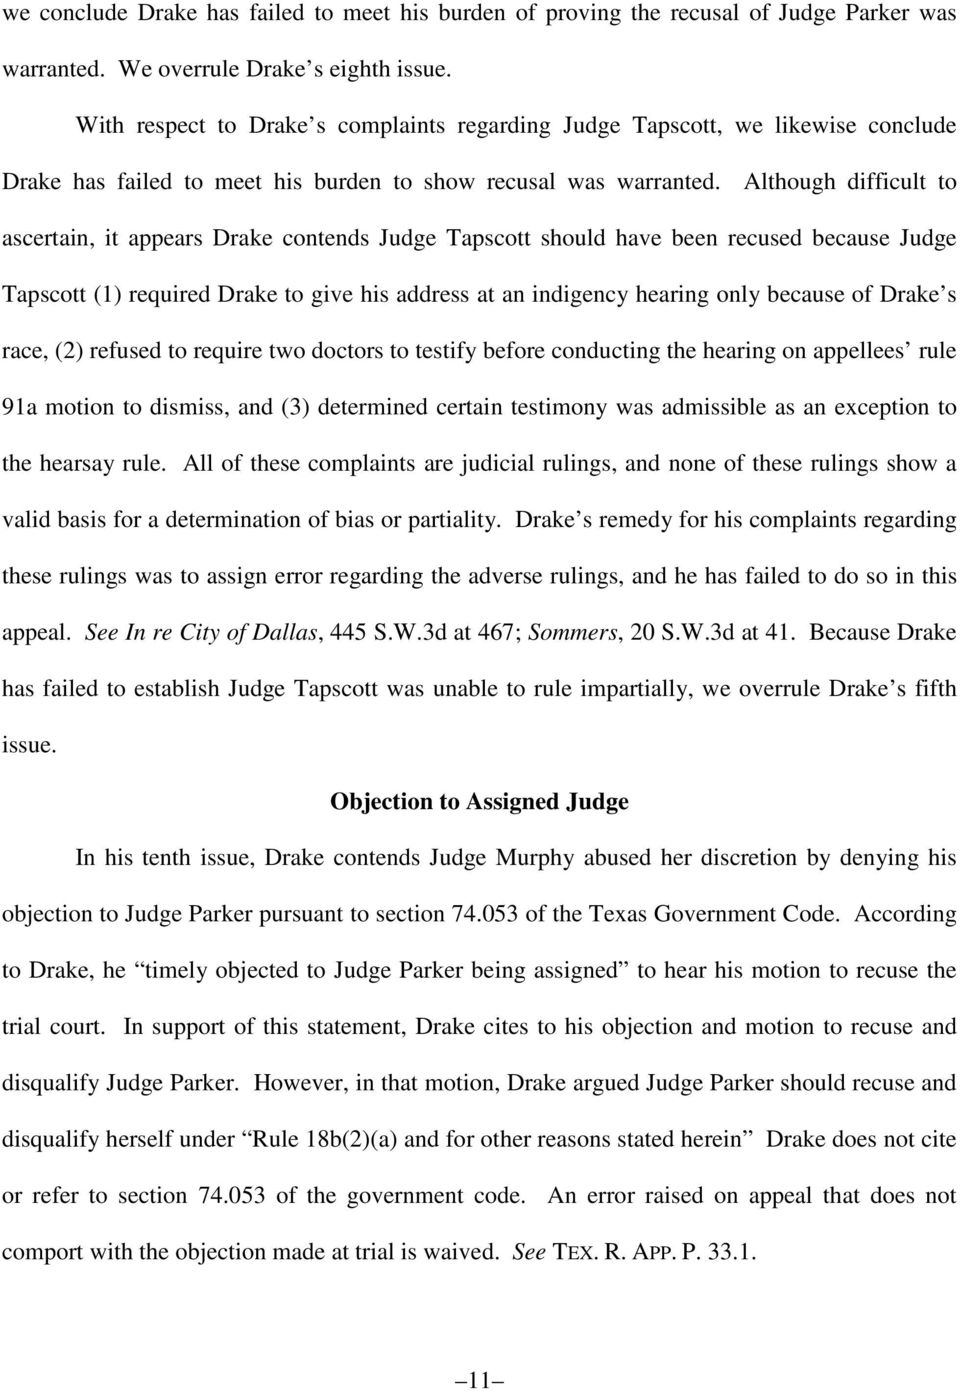 Although difficult to ascertain, it appears Drake contends Judge Tapscott should have been recused because Judge Tapscott (1) required Drake to give his address at an indigency hearing only because